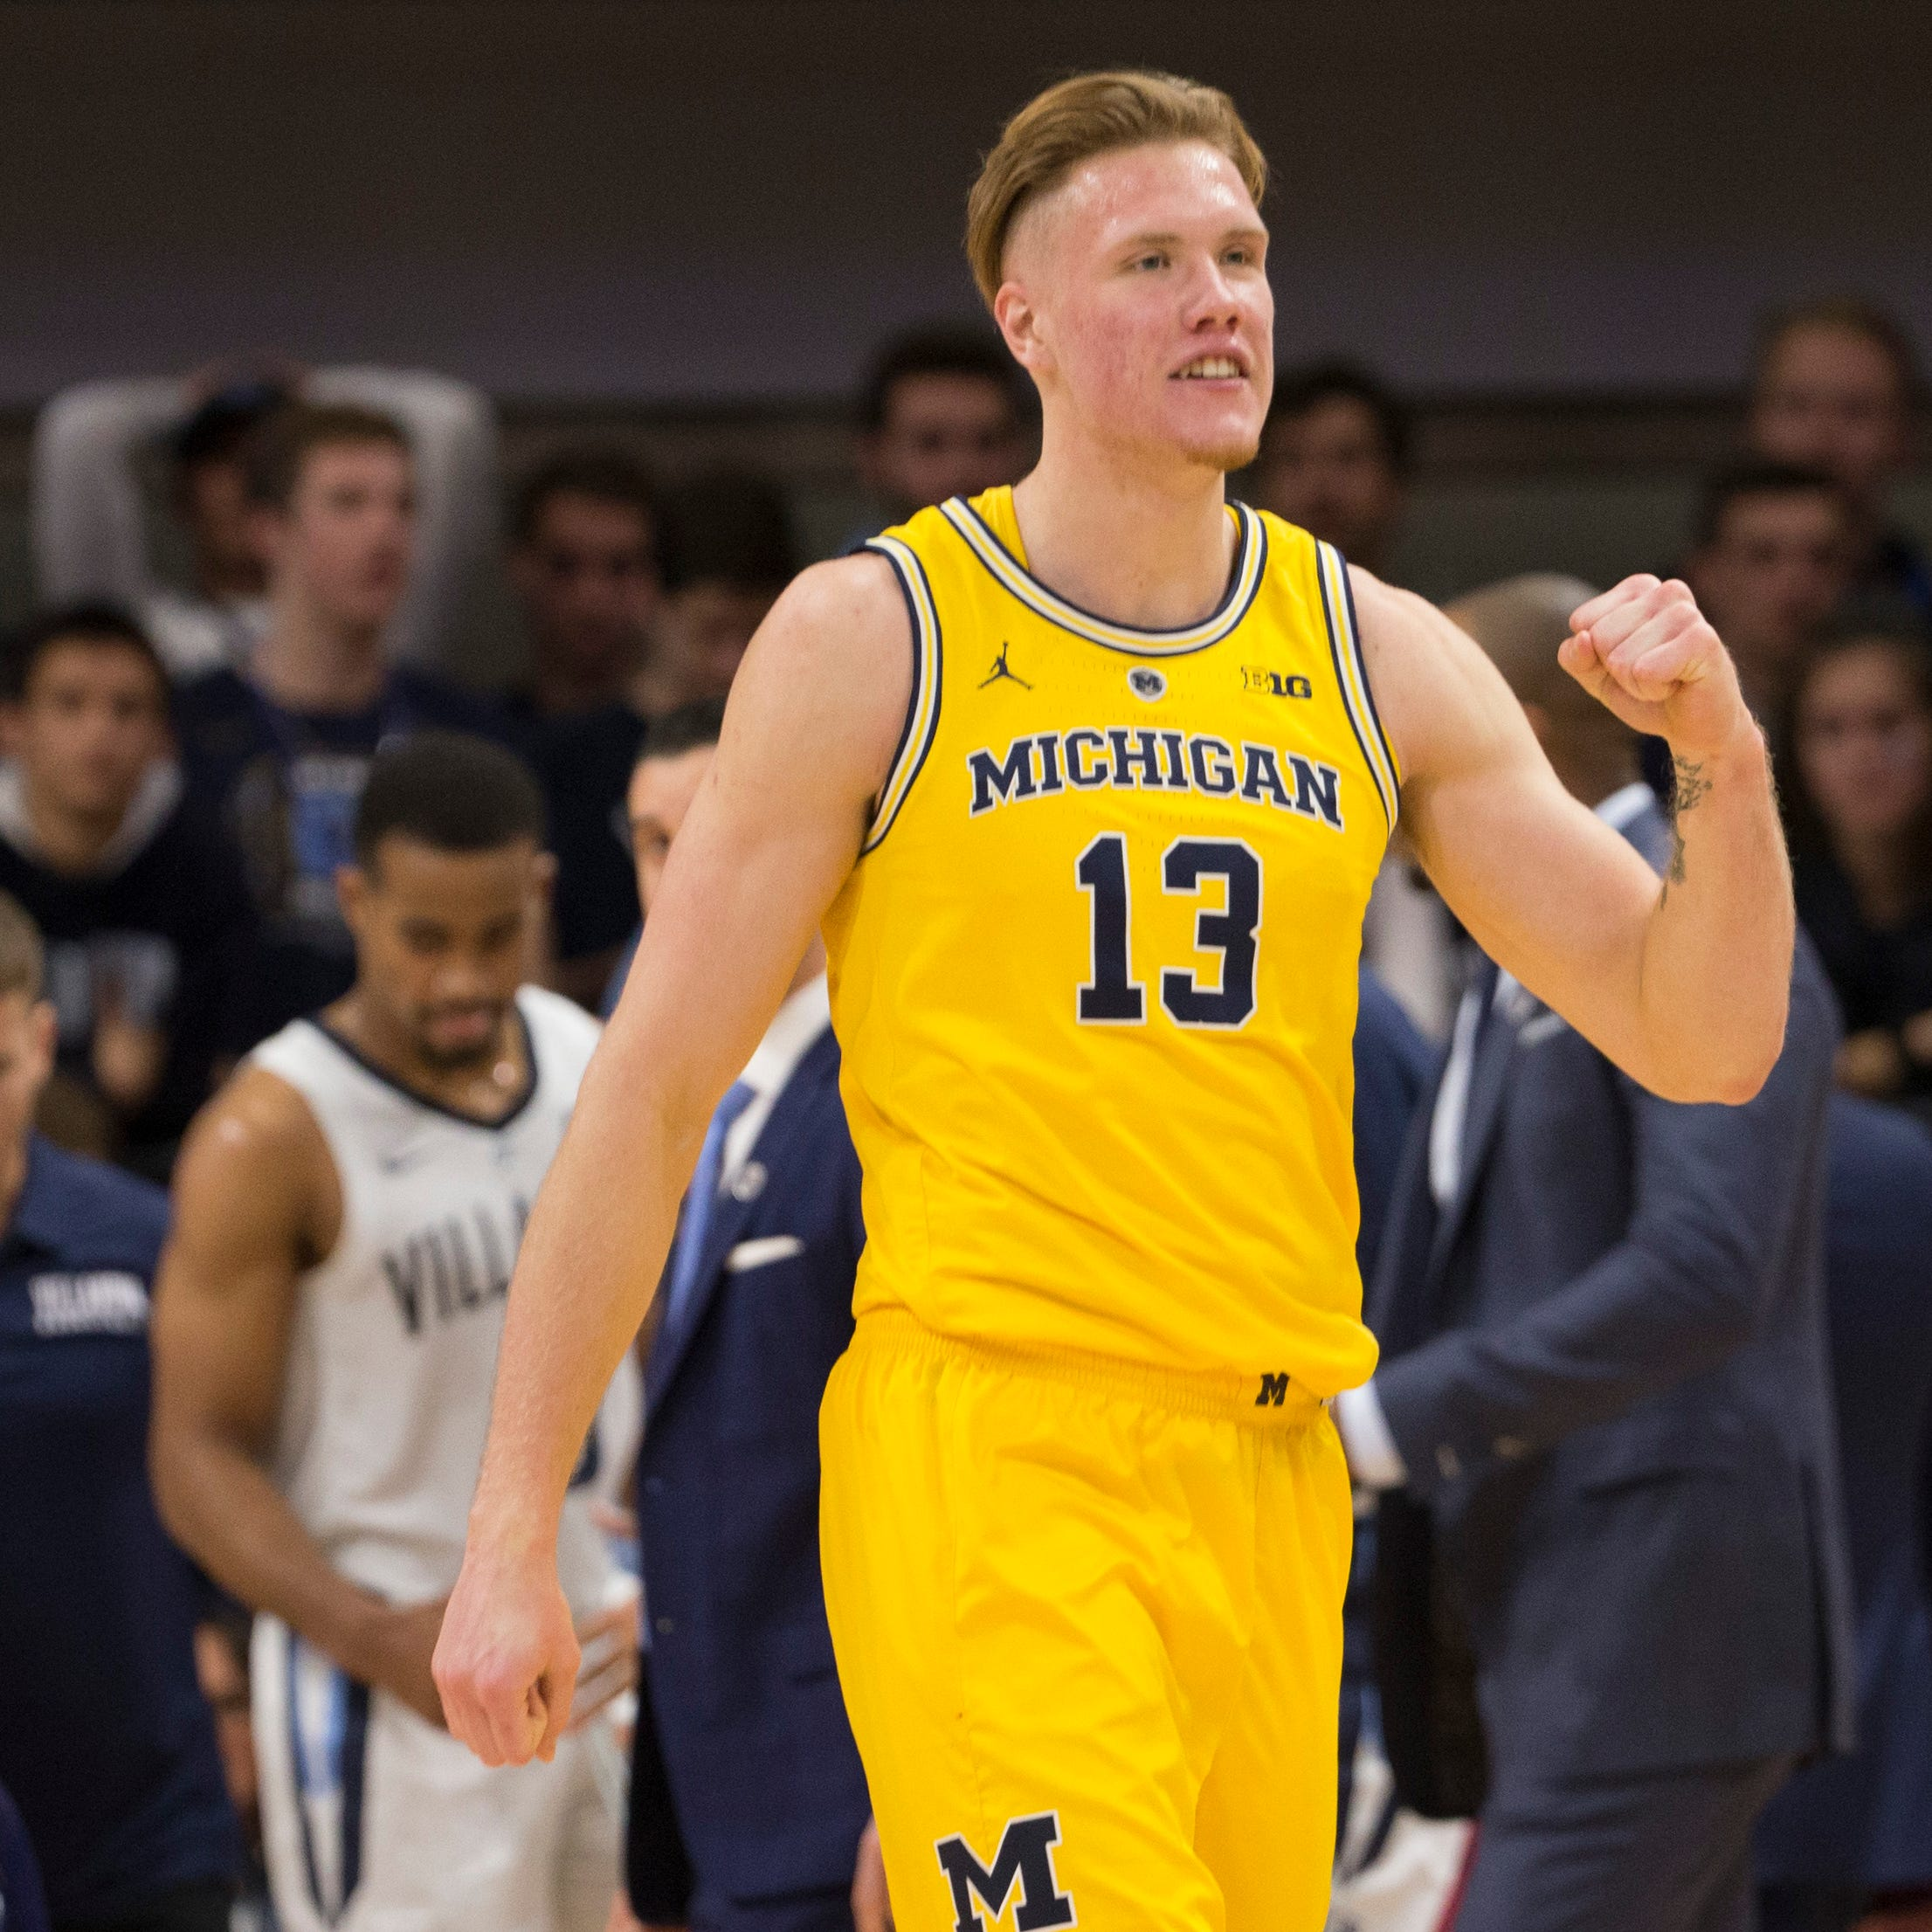 UM's Brazdeikis makes most of 'shining moment'